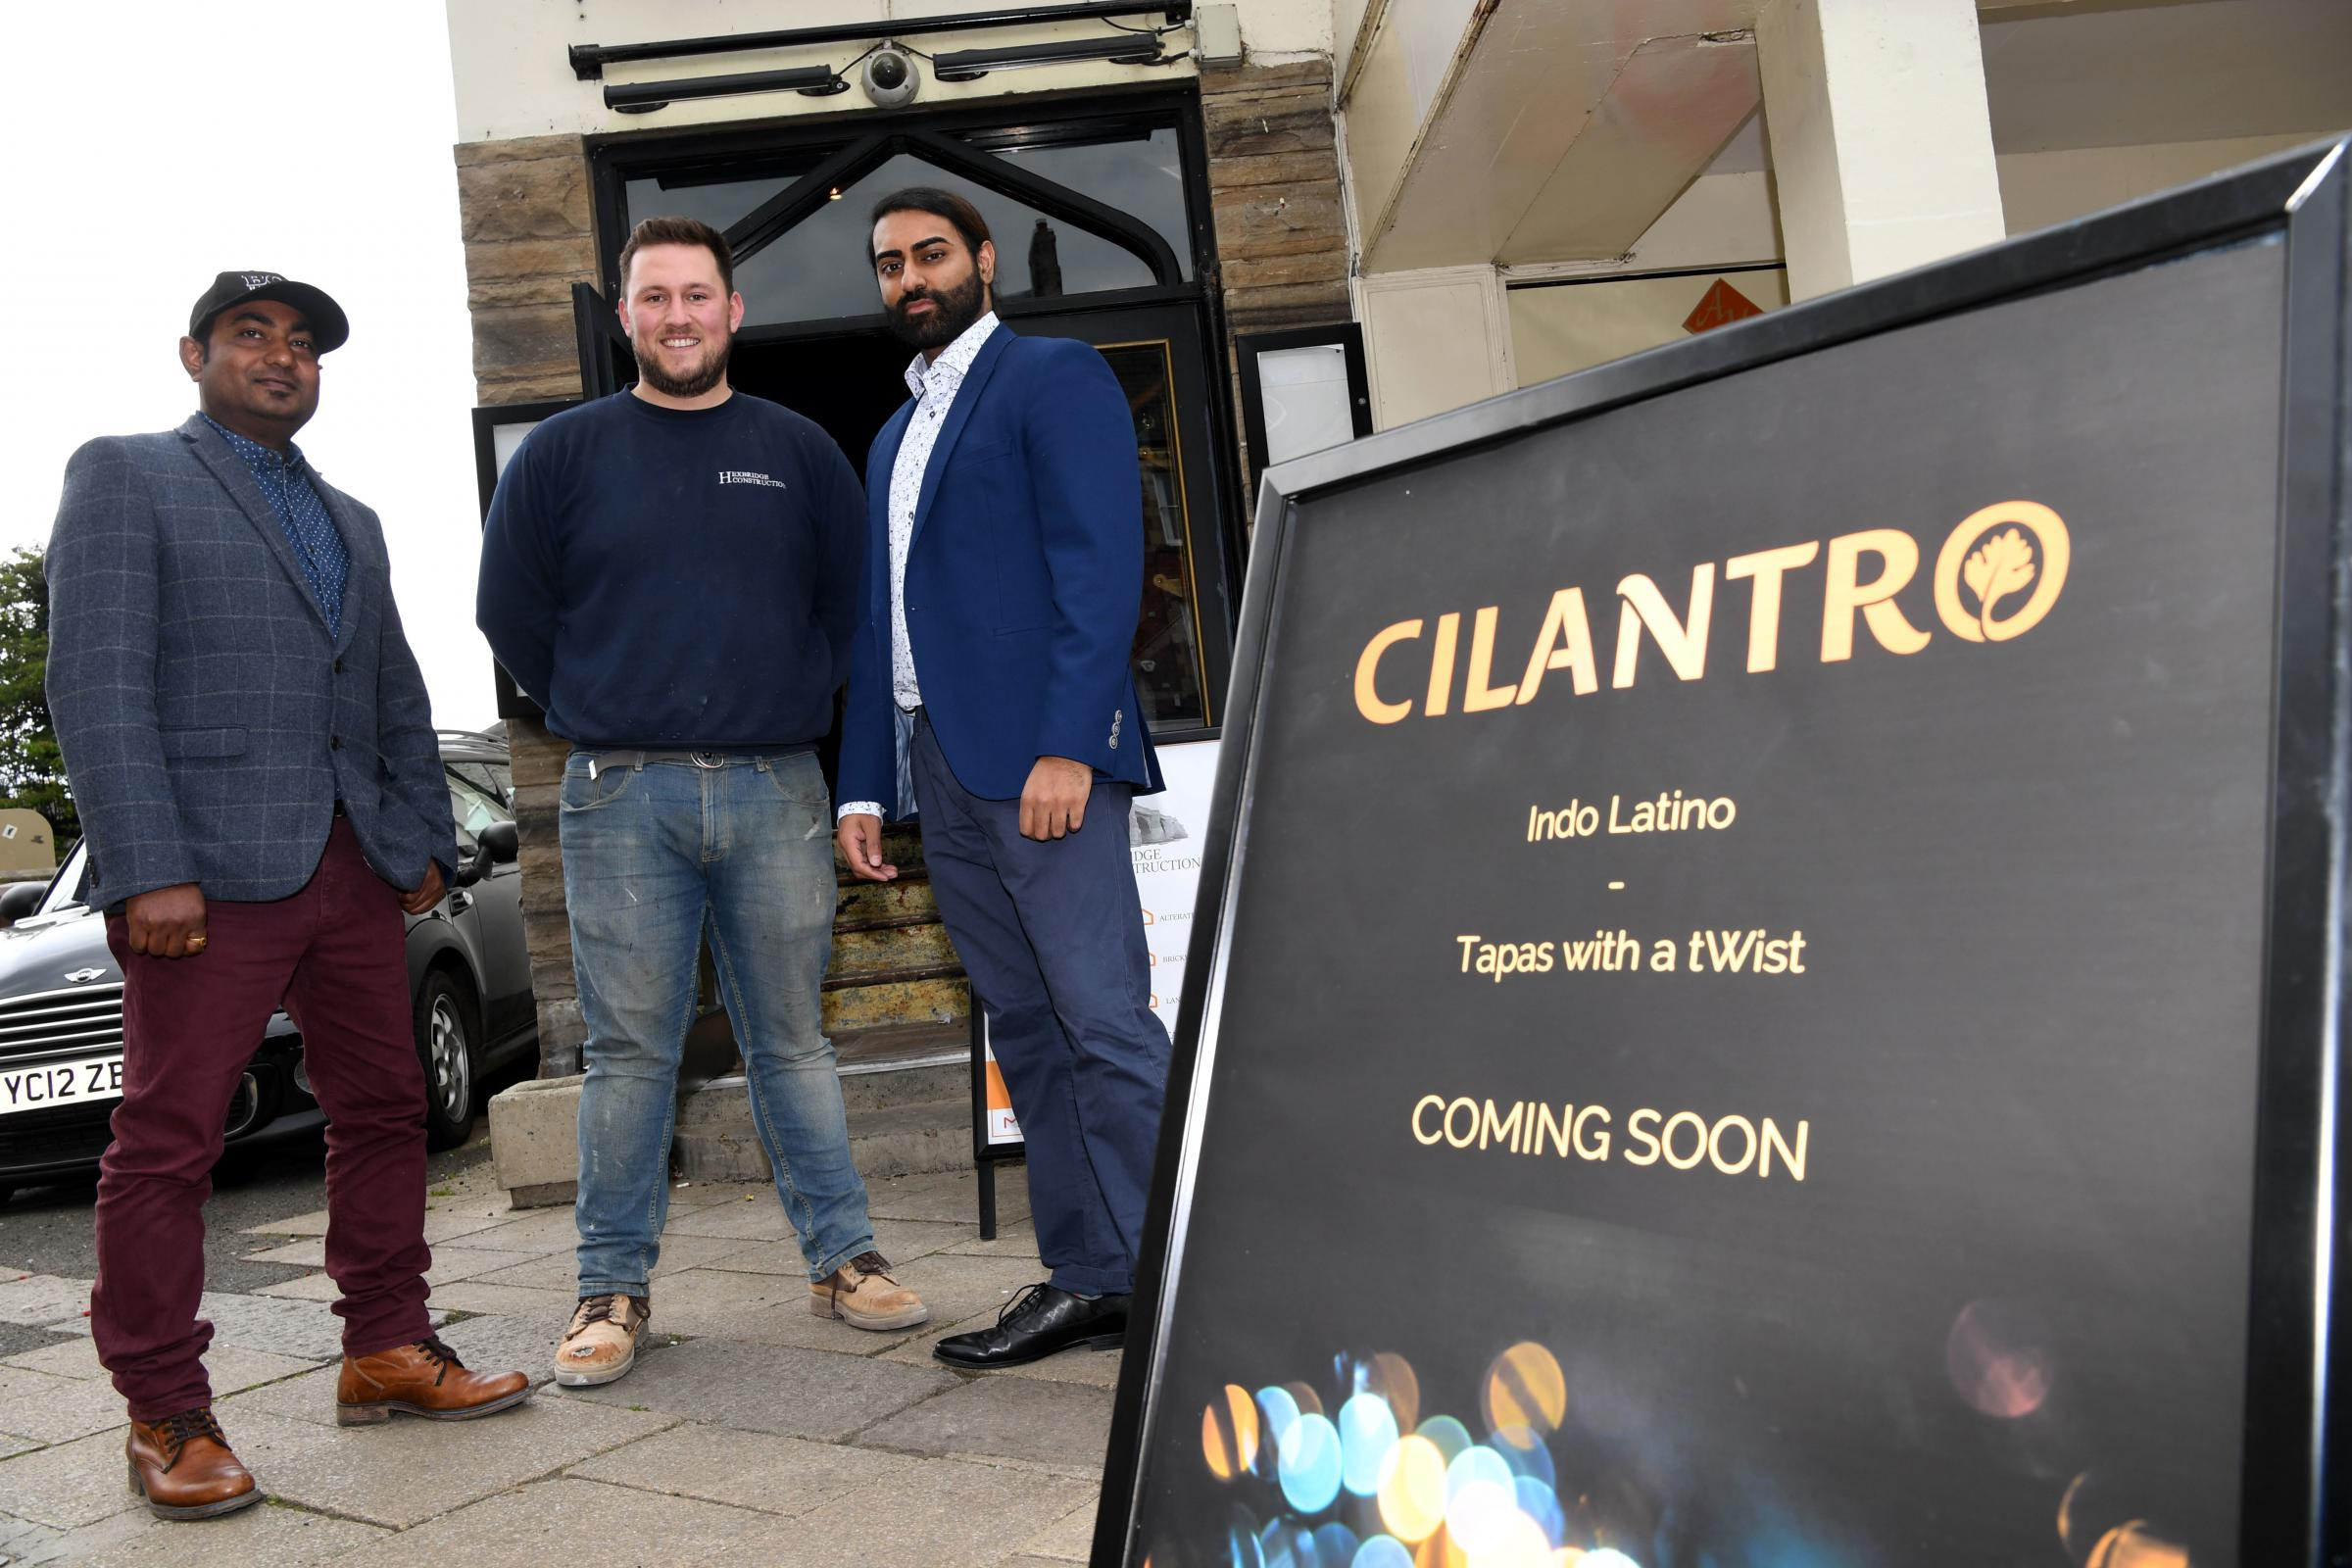 Cilantro head chef Atindra Naskar (left) and owner Nabs Aziz (right) flank Hexbridge Construction owner Jordan Stothard at the former Valley restaurant which is being transformed into a tapas bar.